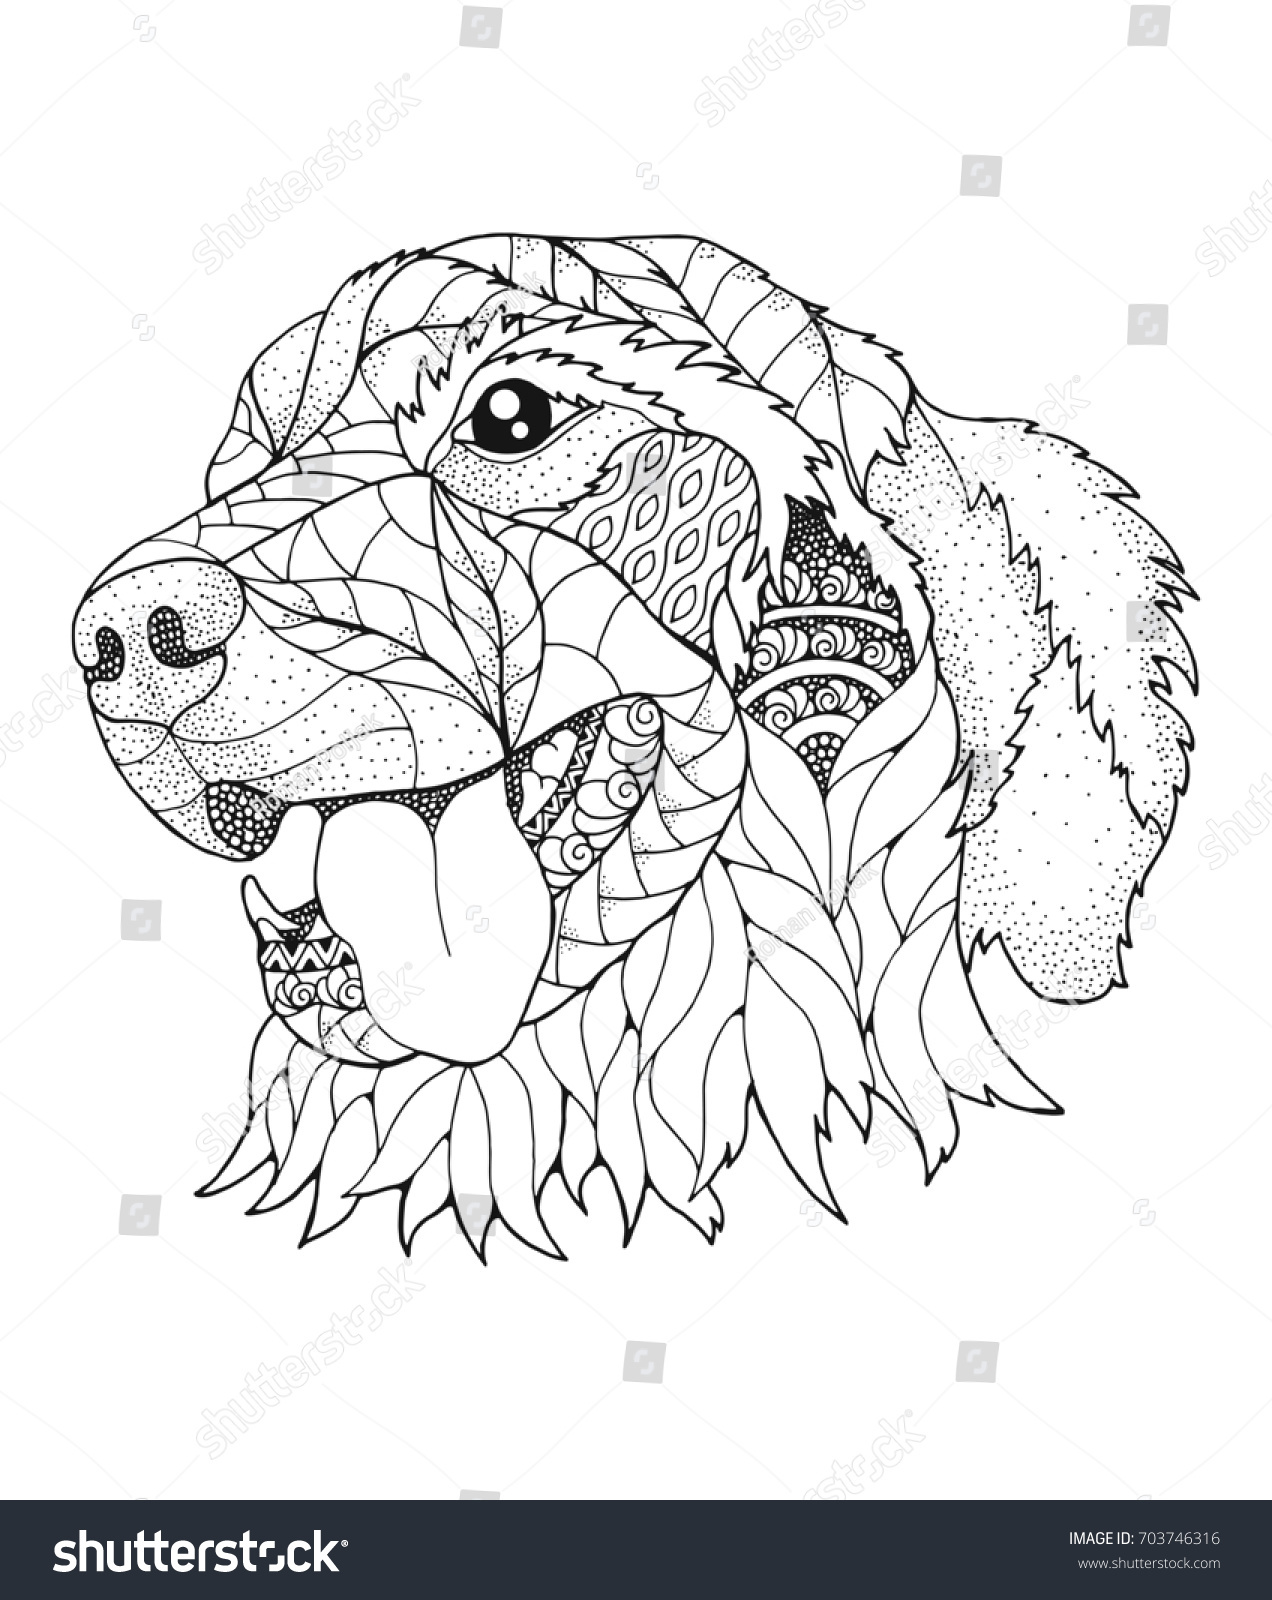 Golden Retriever Dog In Zentangle And Stipple Style Vector Illustration Anti Stress Coloring Book